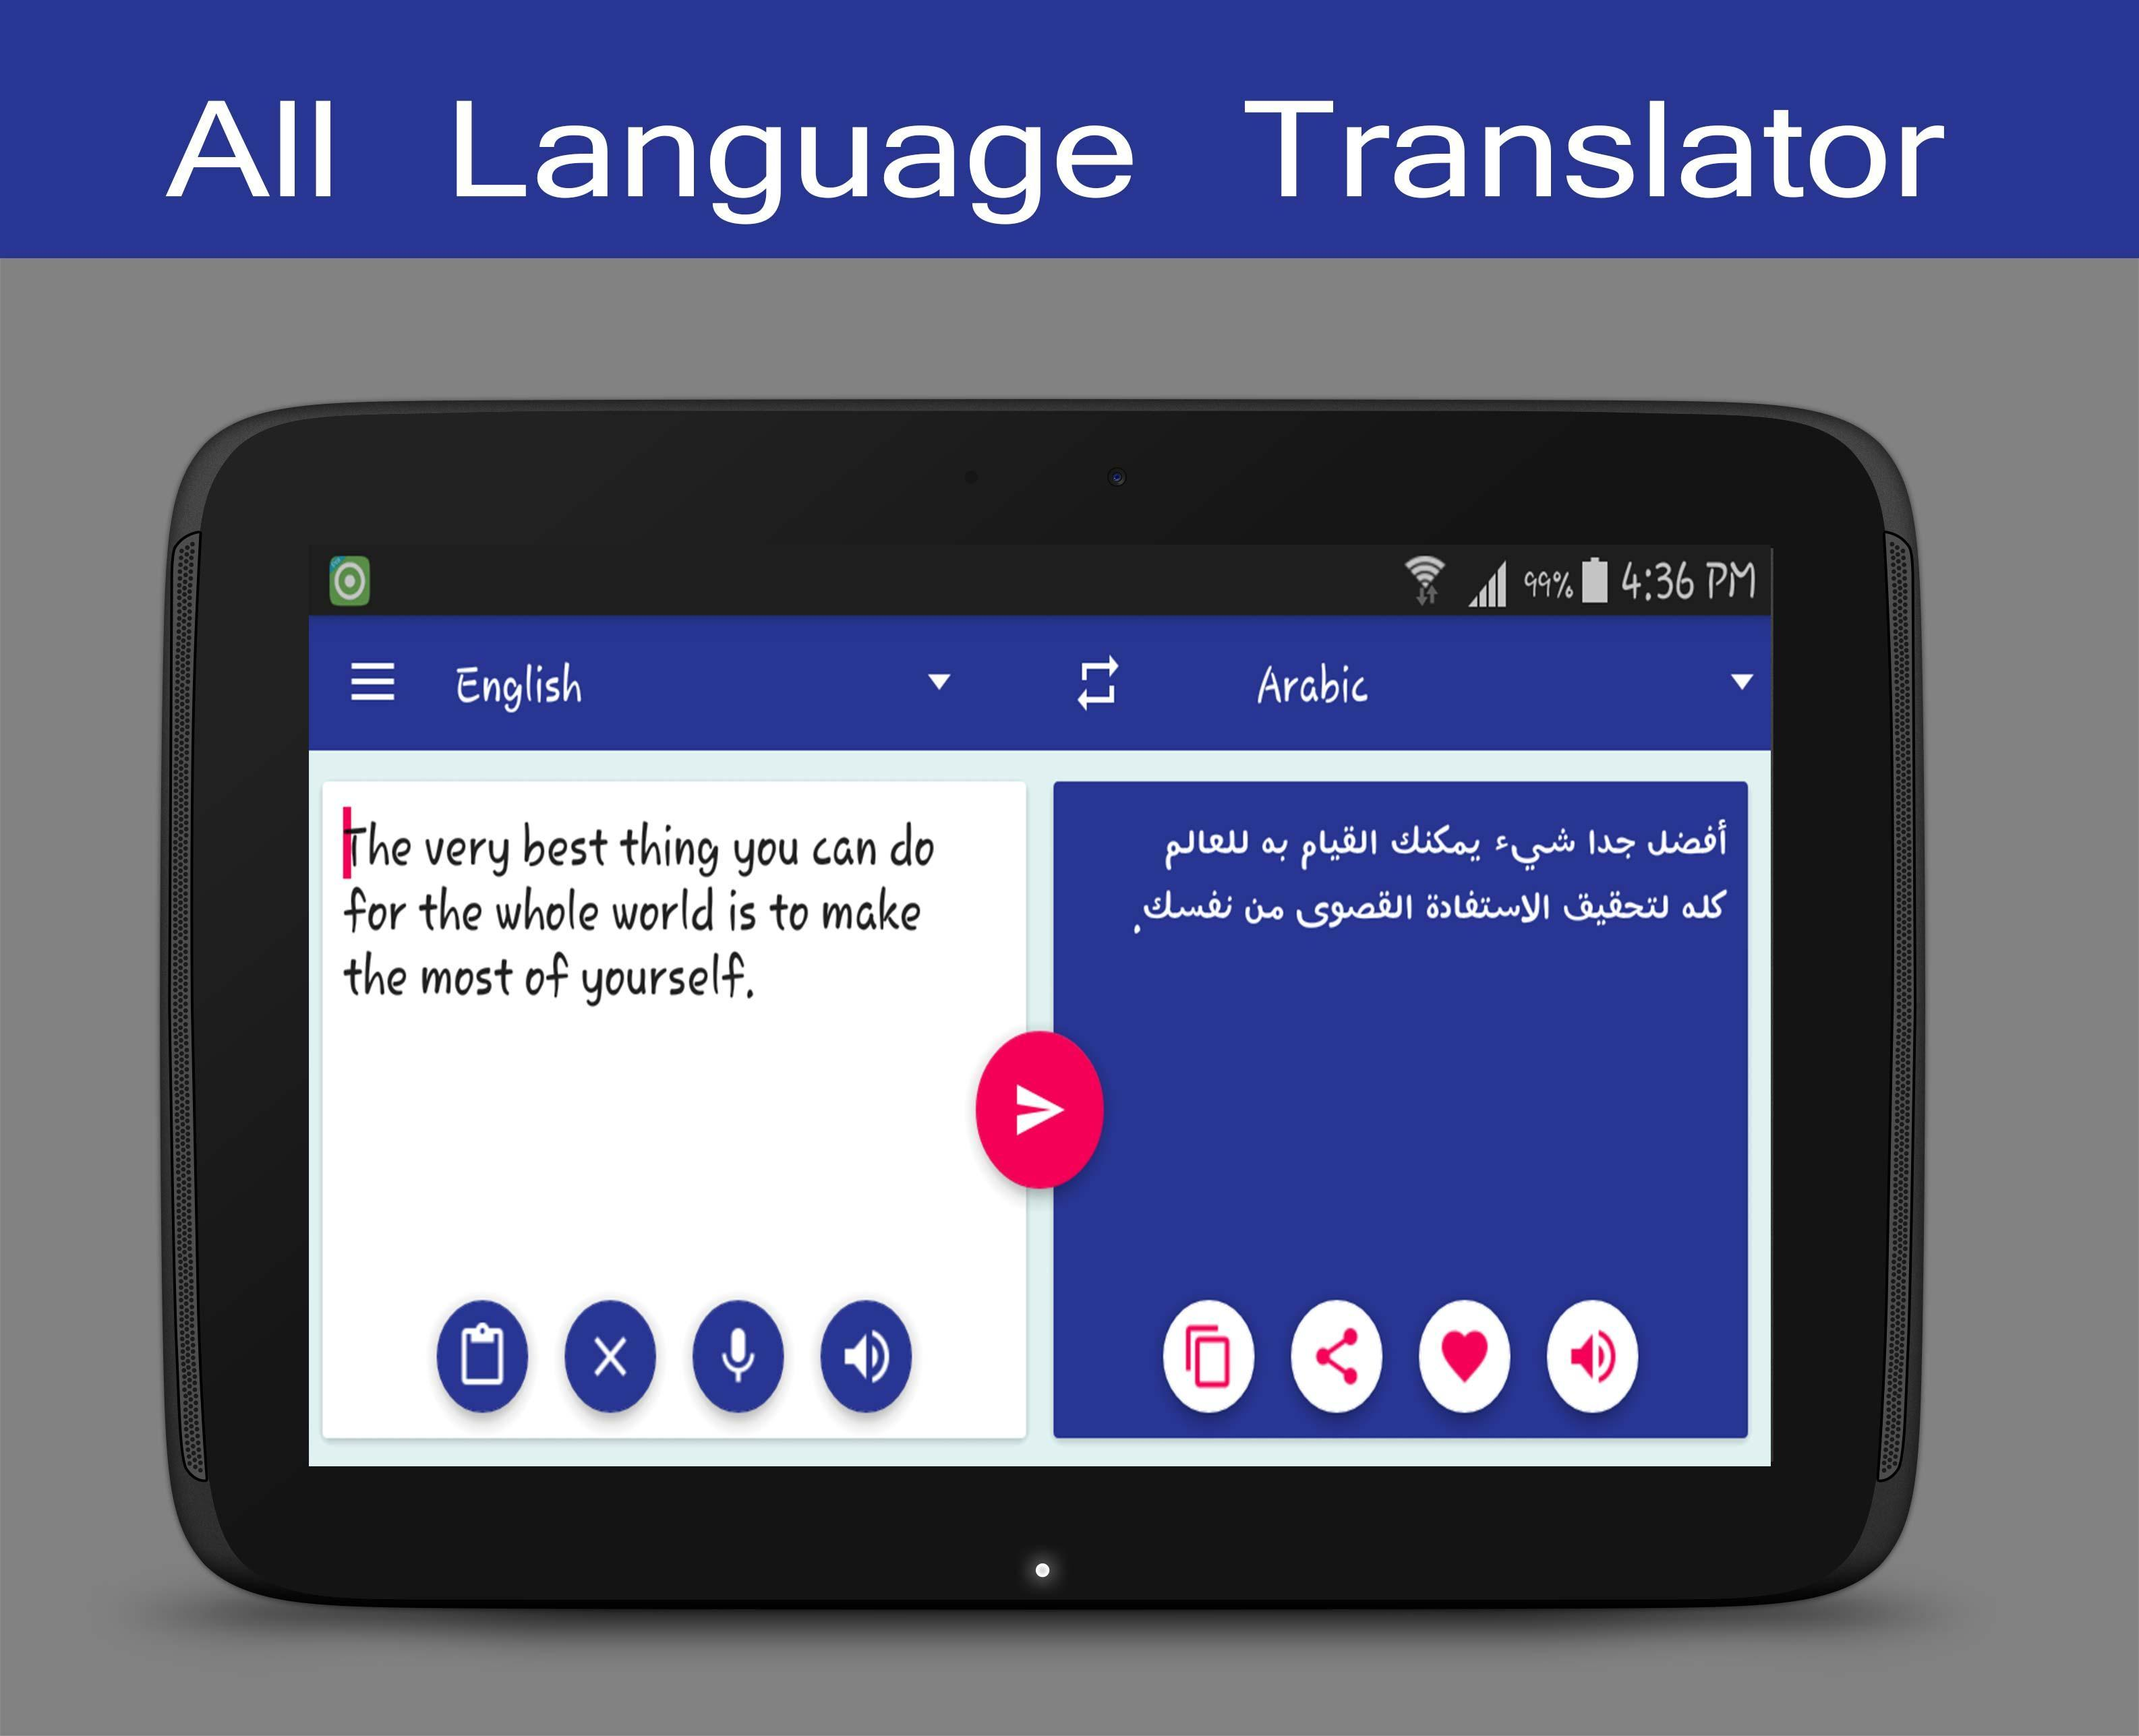 All Language Translator Free for Android - APK Download